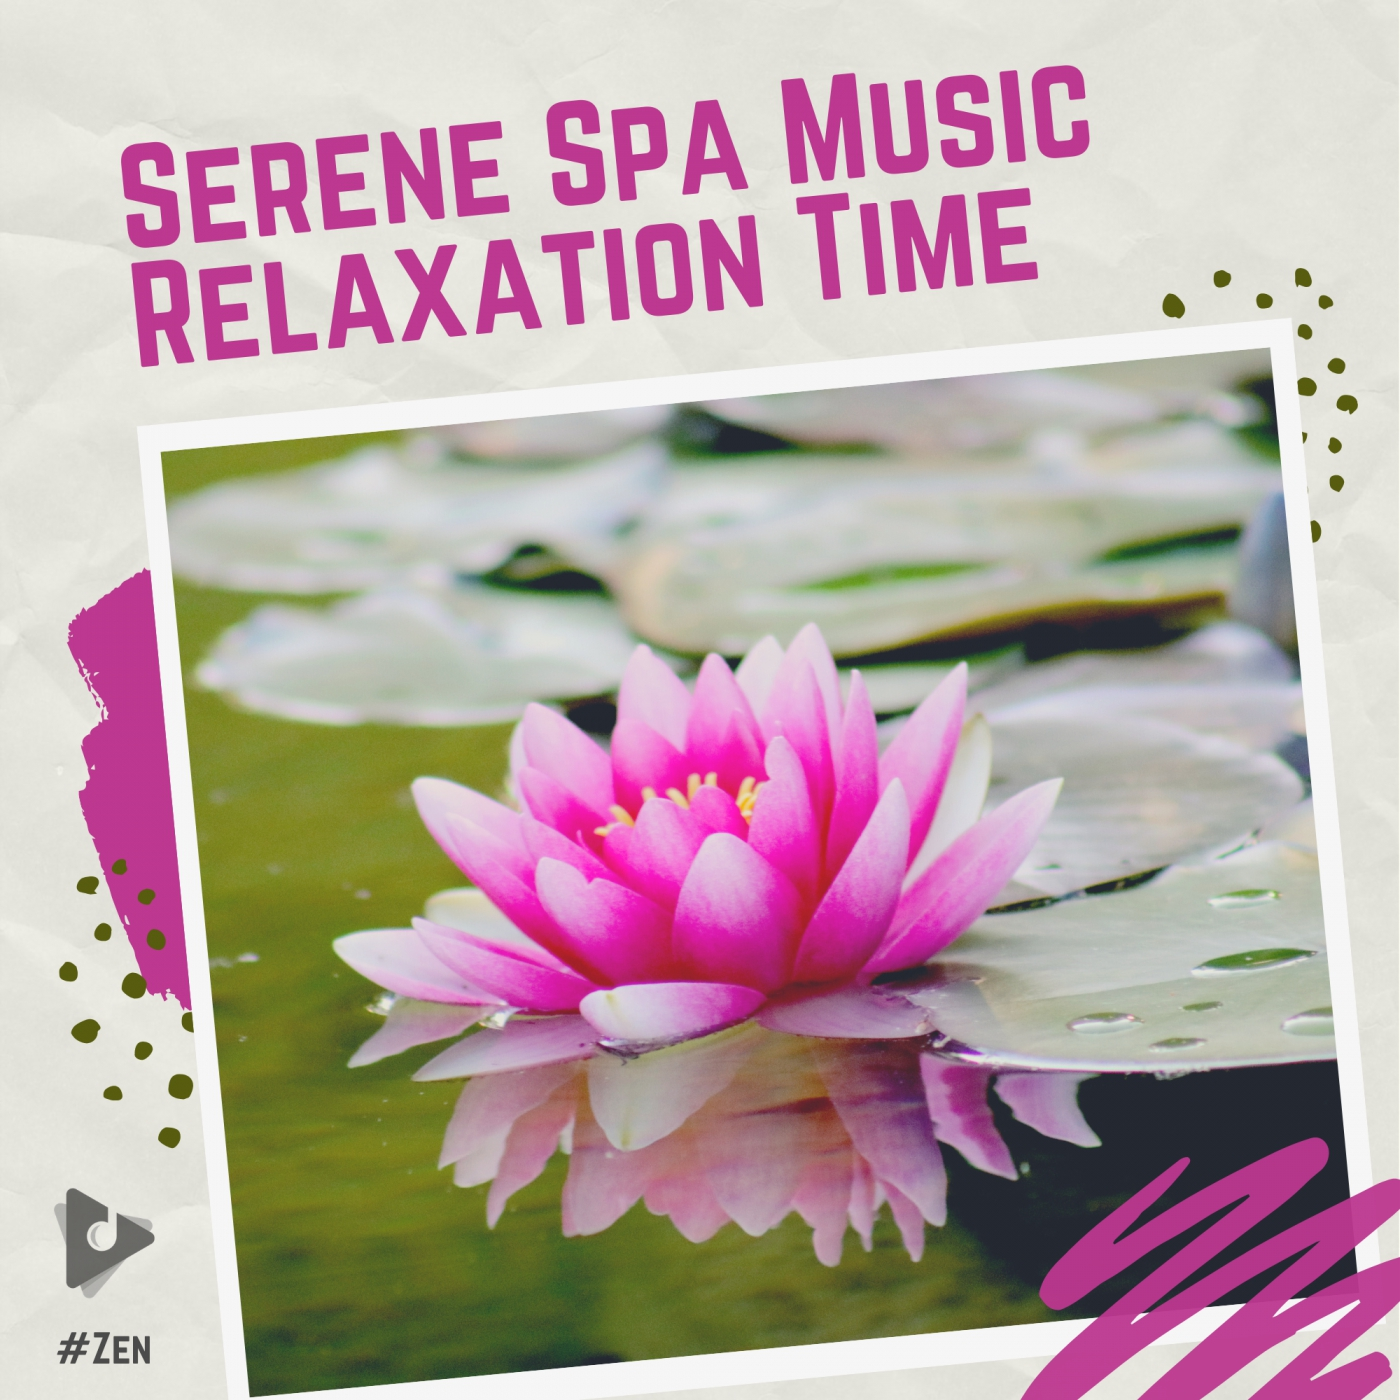 Serene Spa Music Relaxation Time